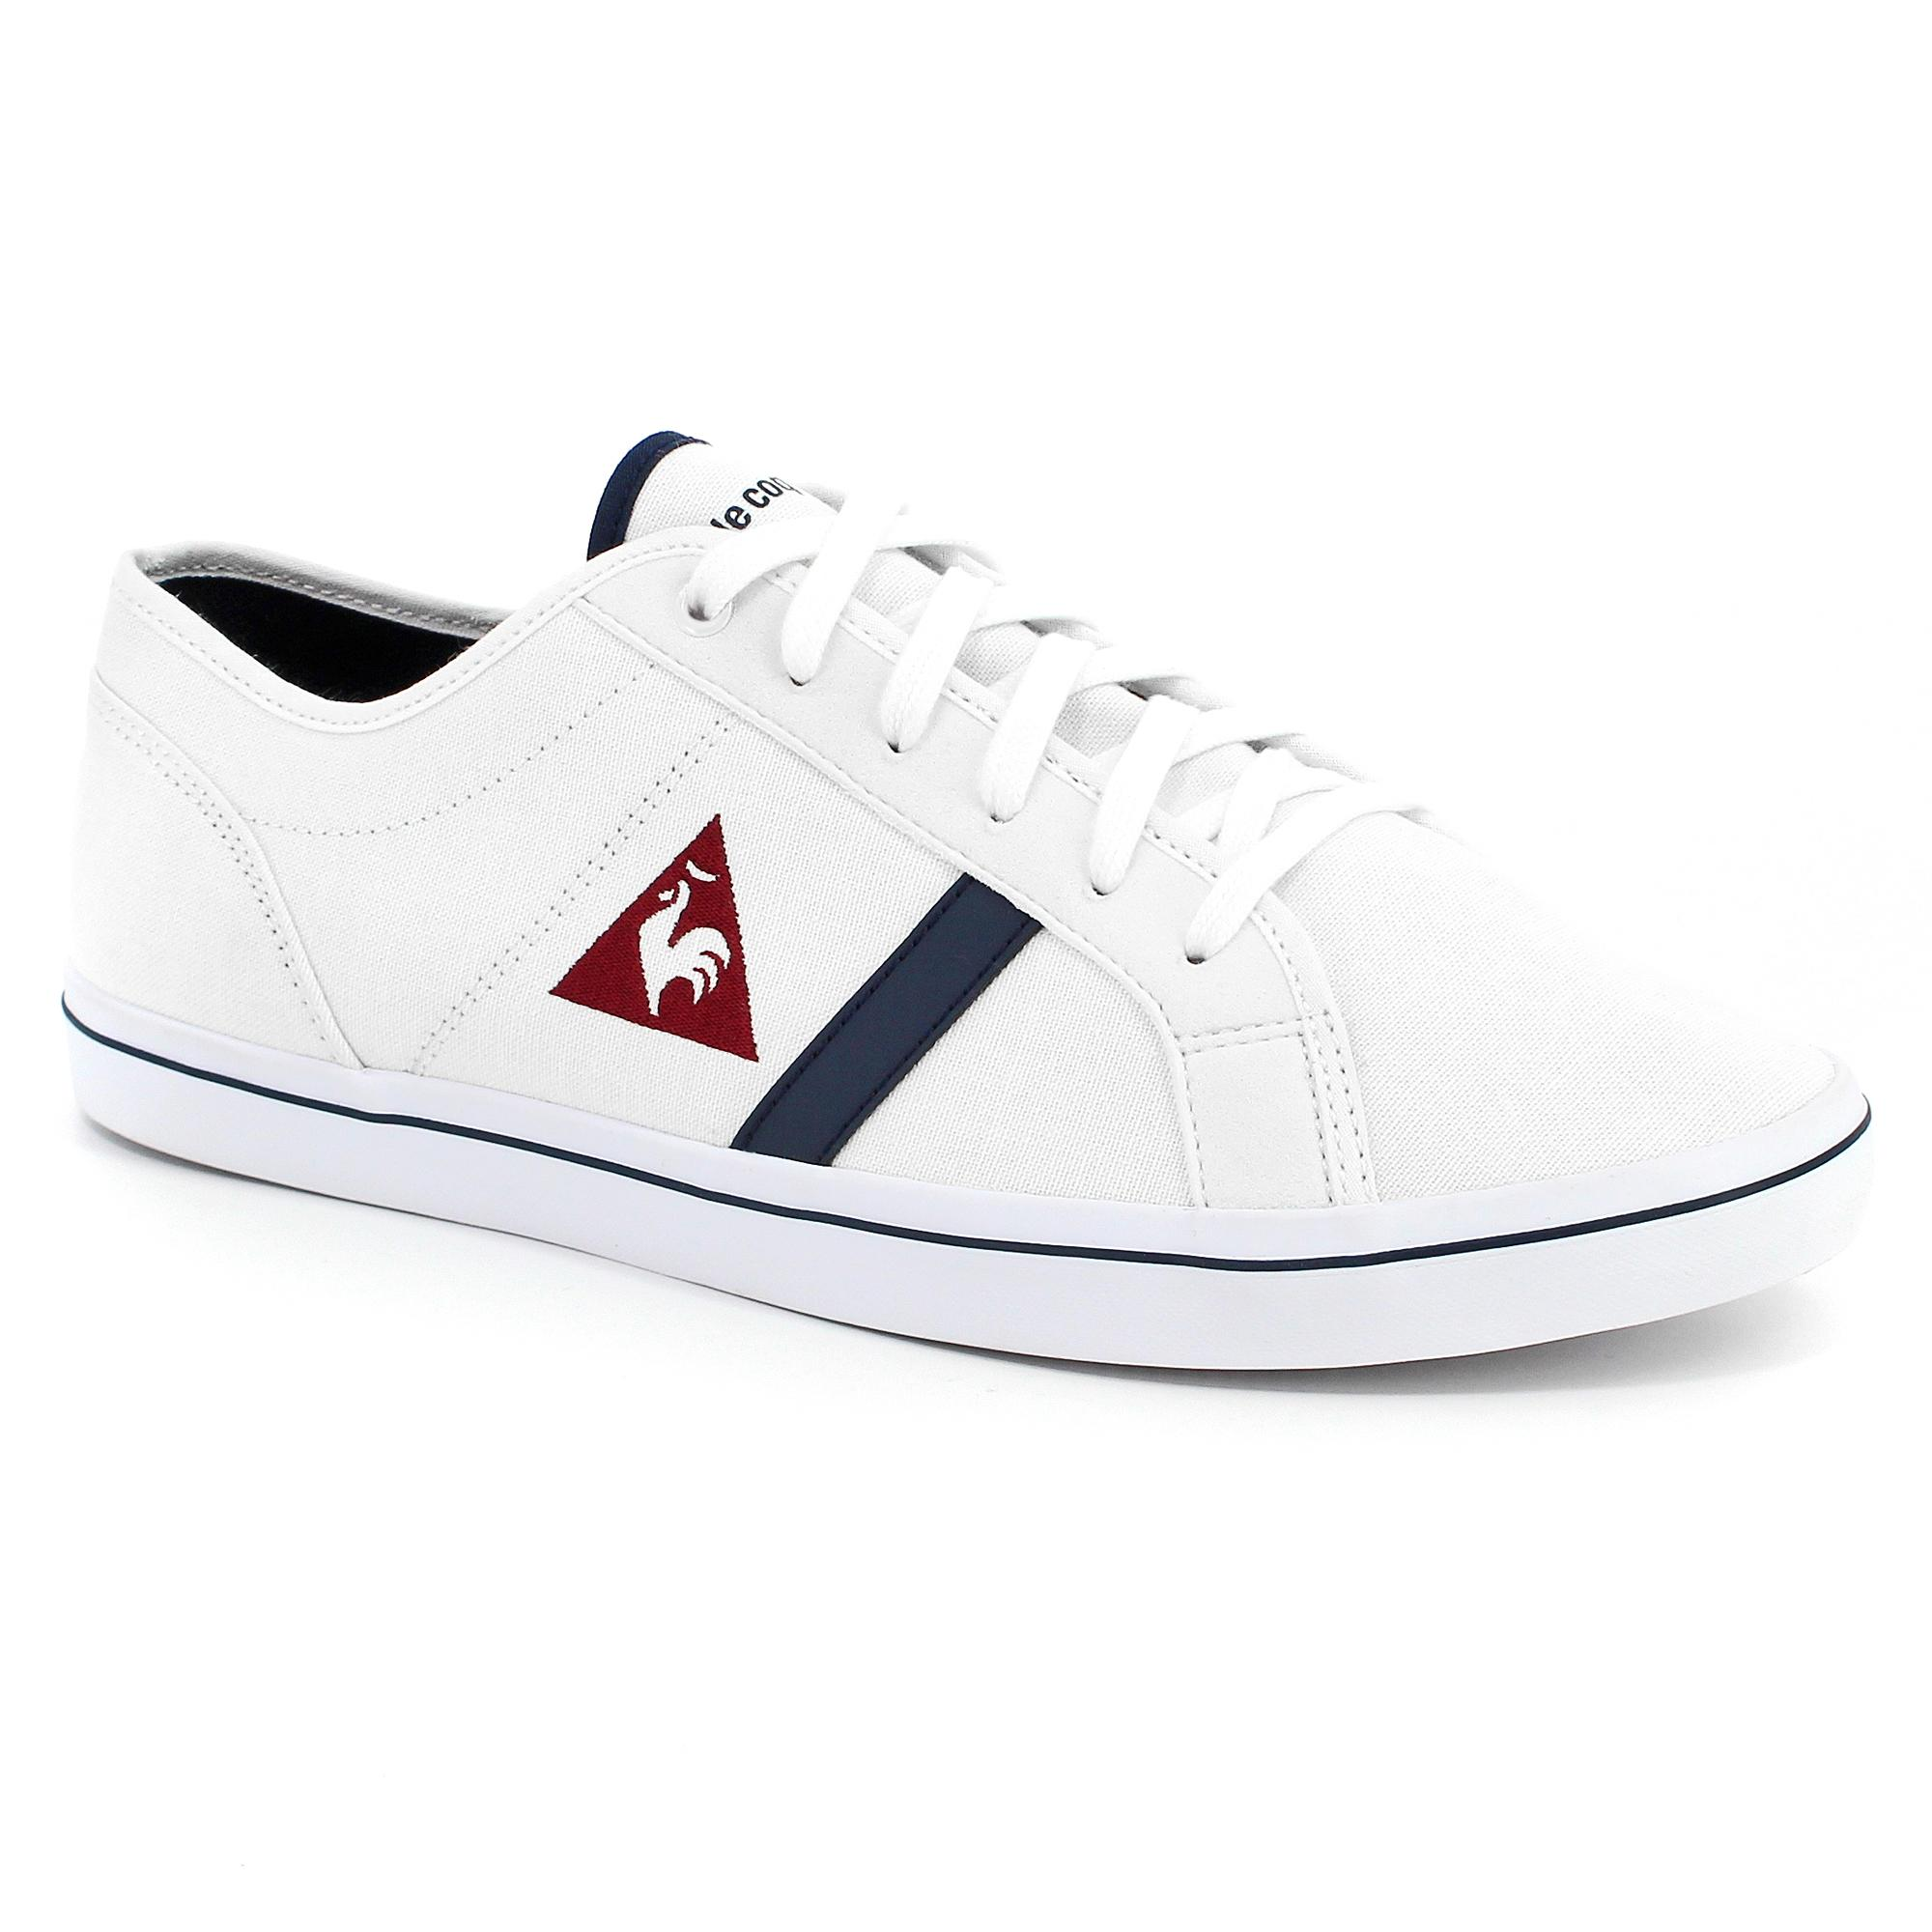 premium selection c4d20 6a0ba Le coq sportif Aceone CVS White buy and offers on Smashinn